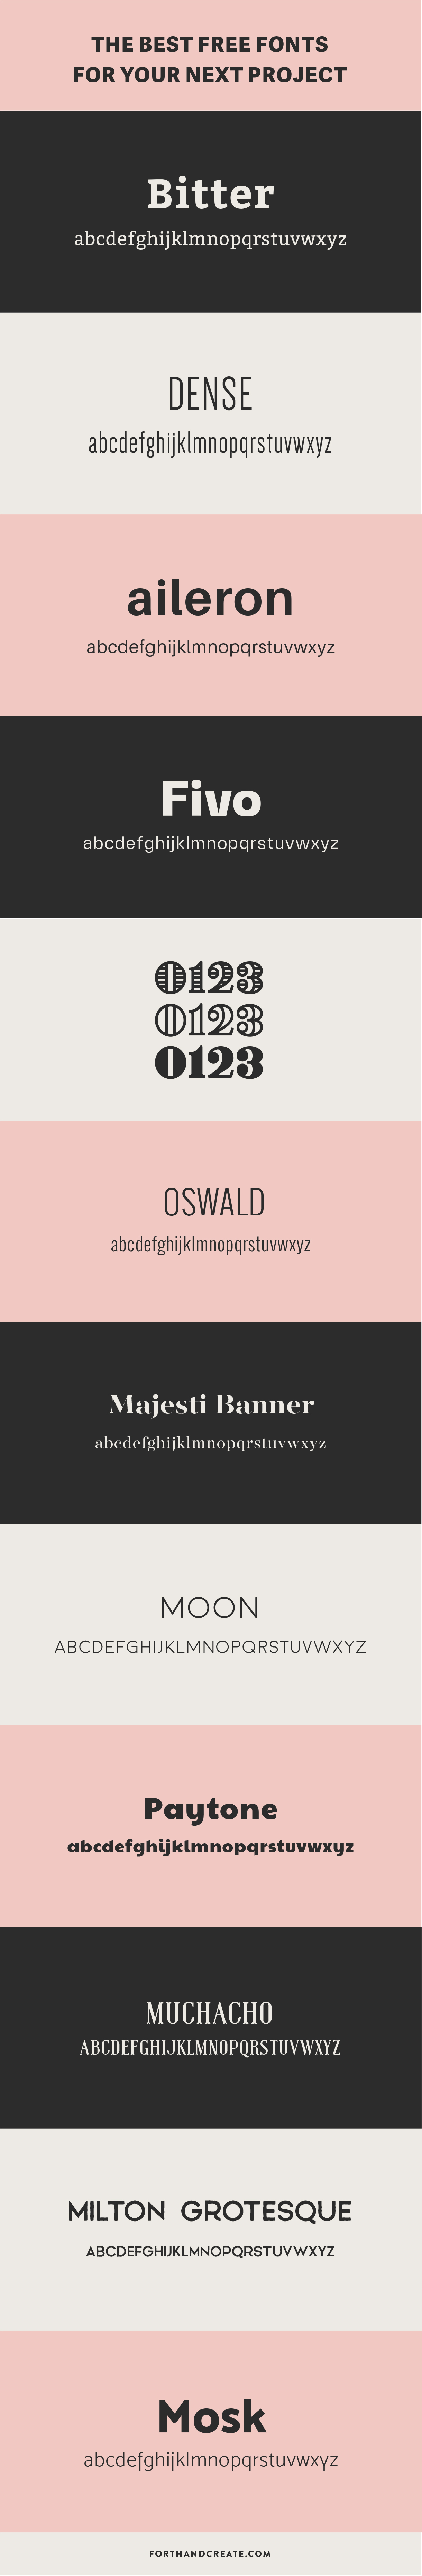 The best free fonts for your next project. Click through to get the download link.